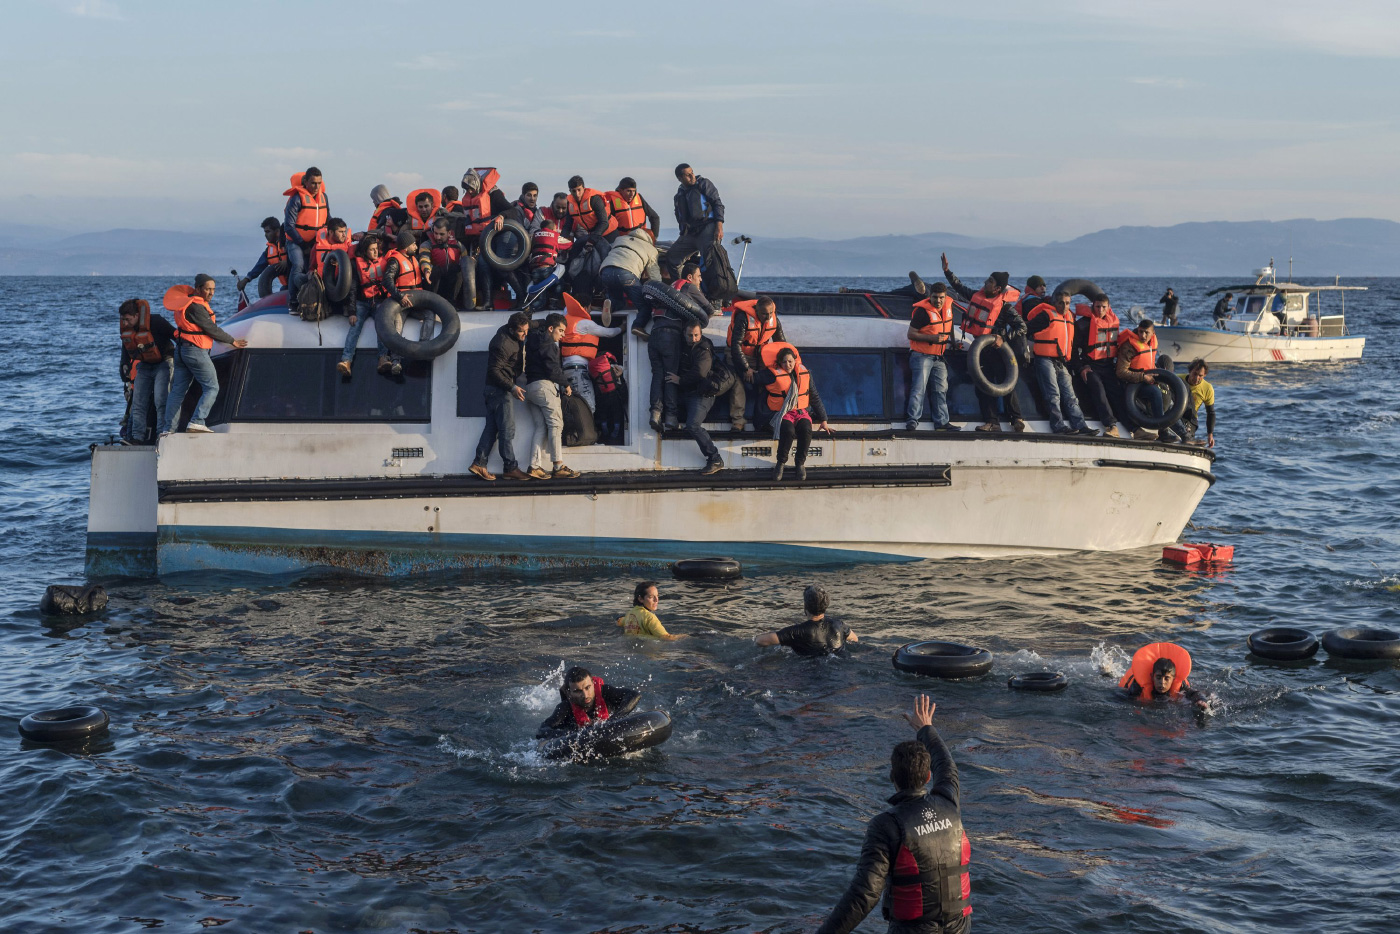 Refugees arrive by boat in Greece's Aegean Islands